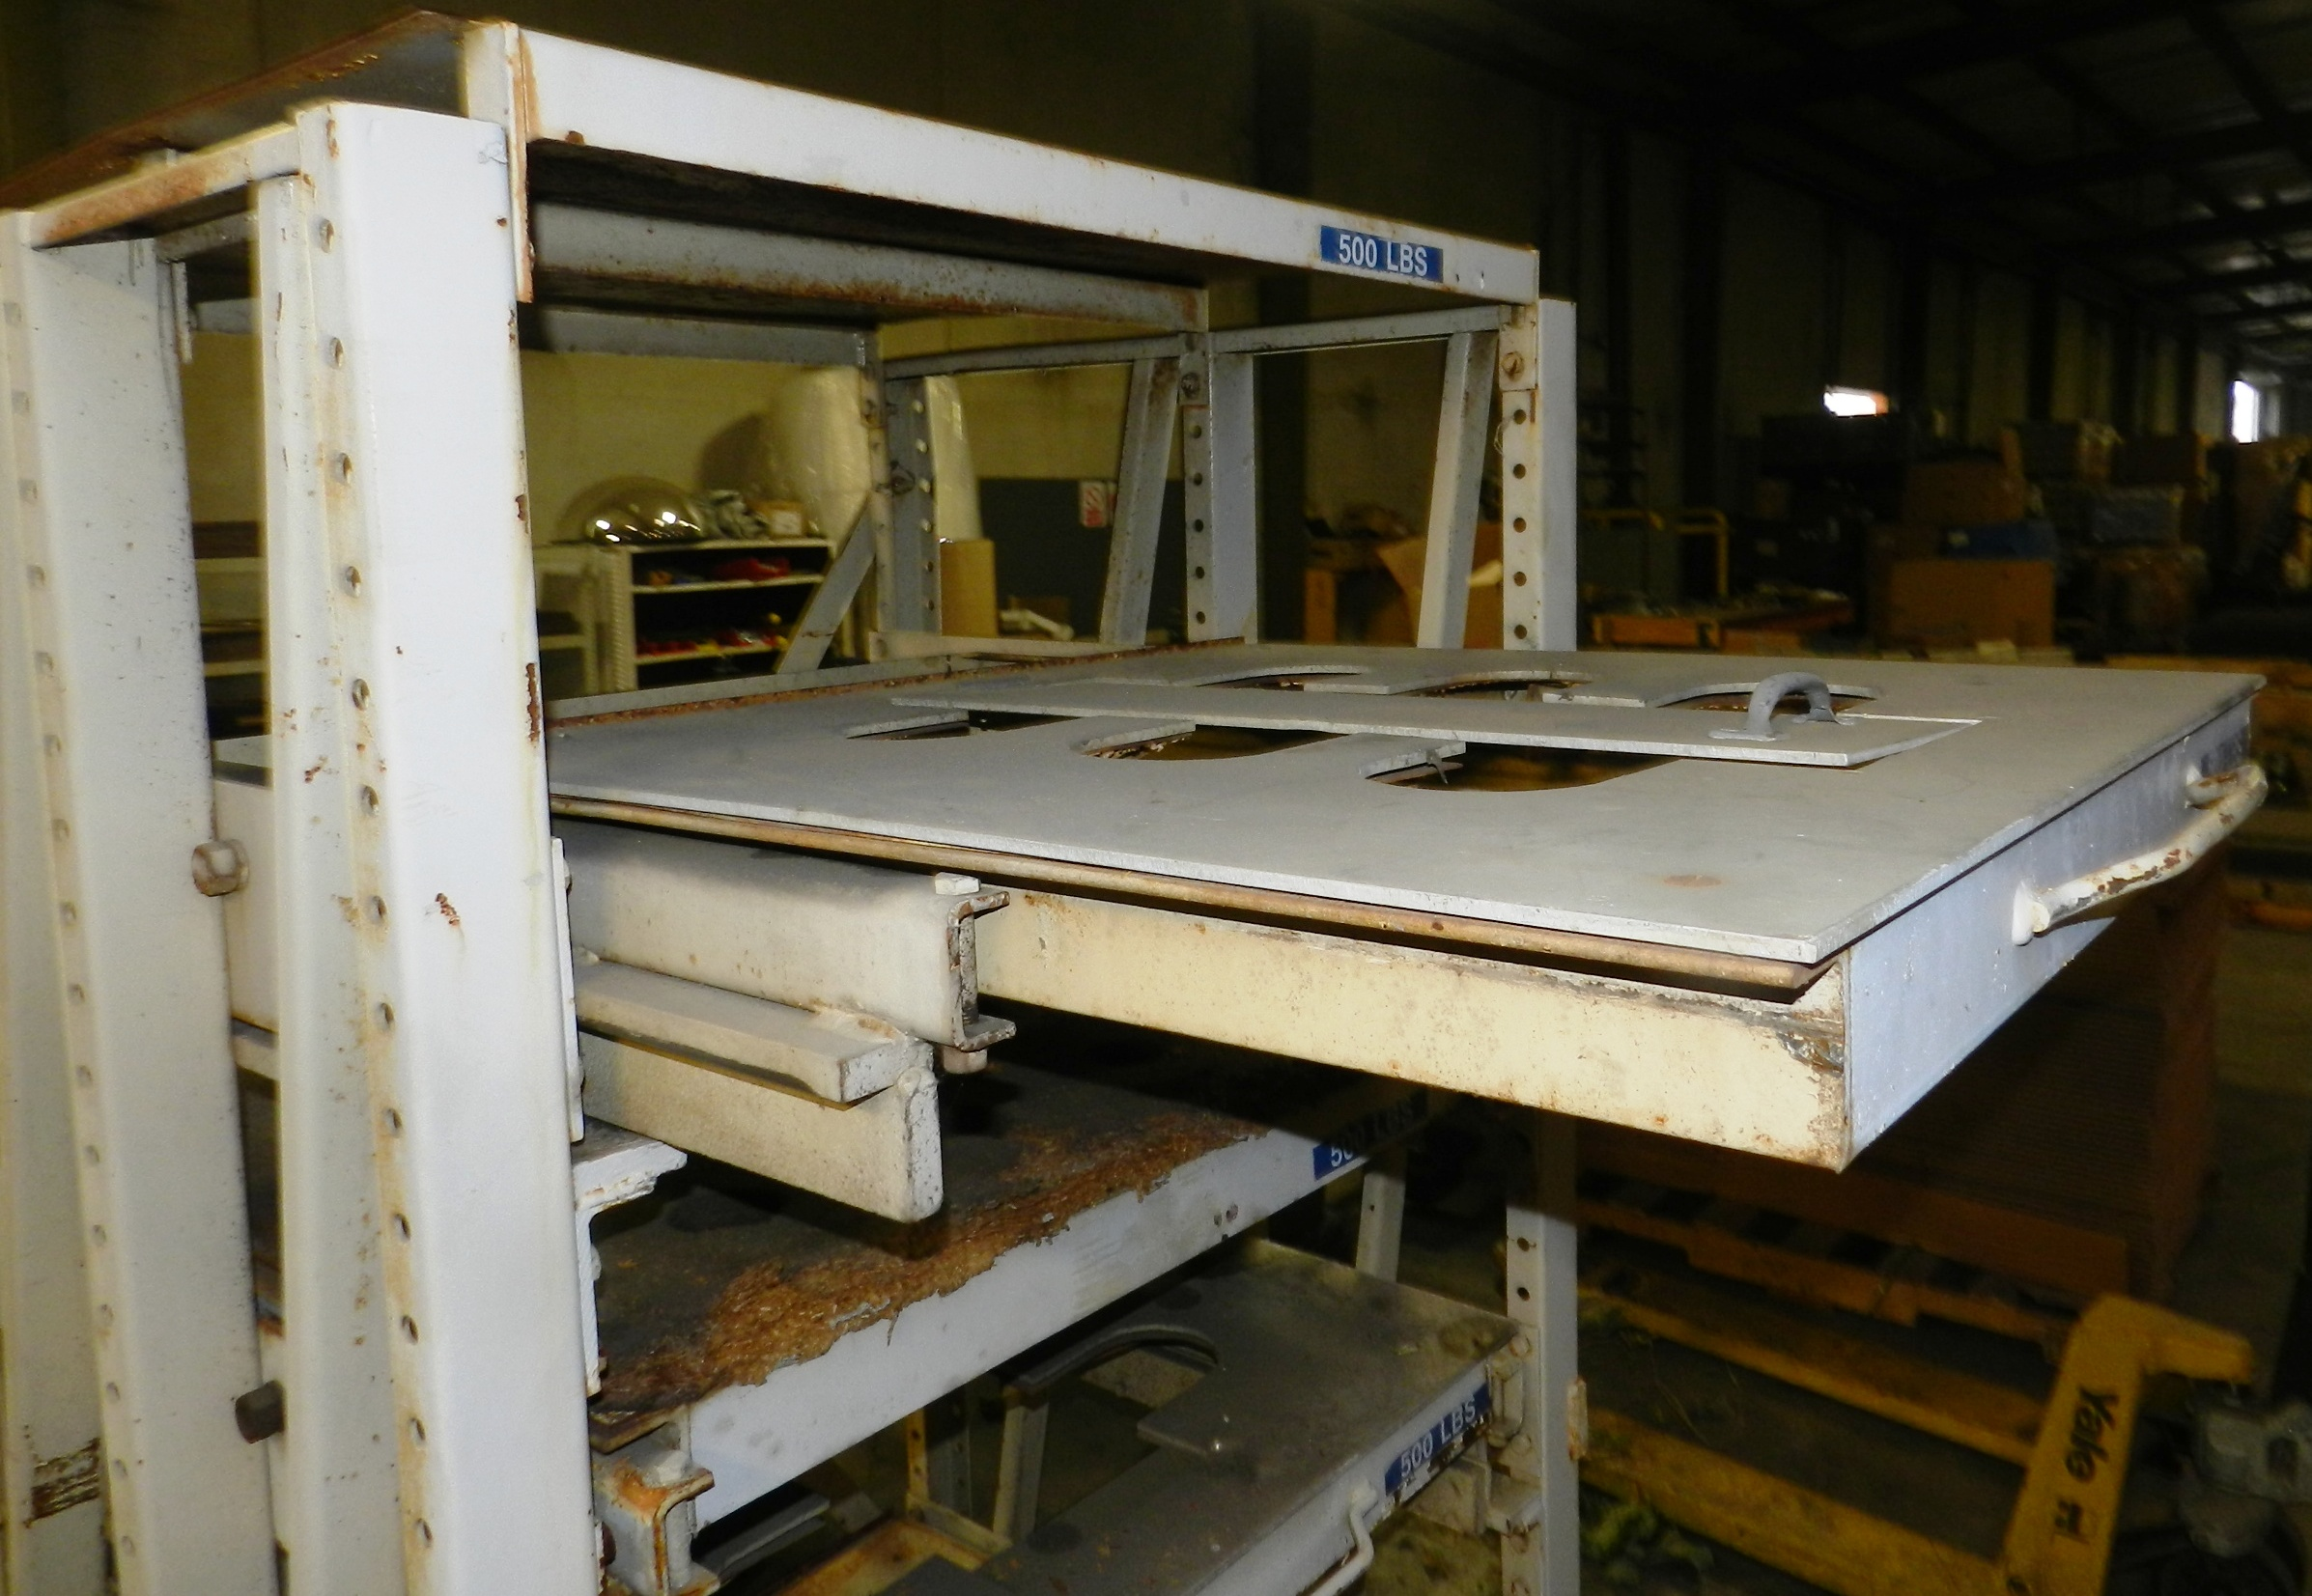 Lot 77 - Heavy Duty Roll Out Die Shelf 3'x 3'